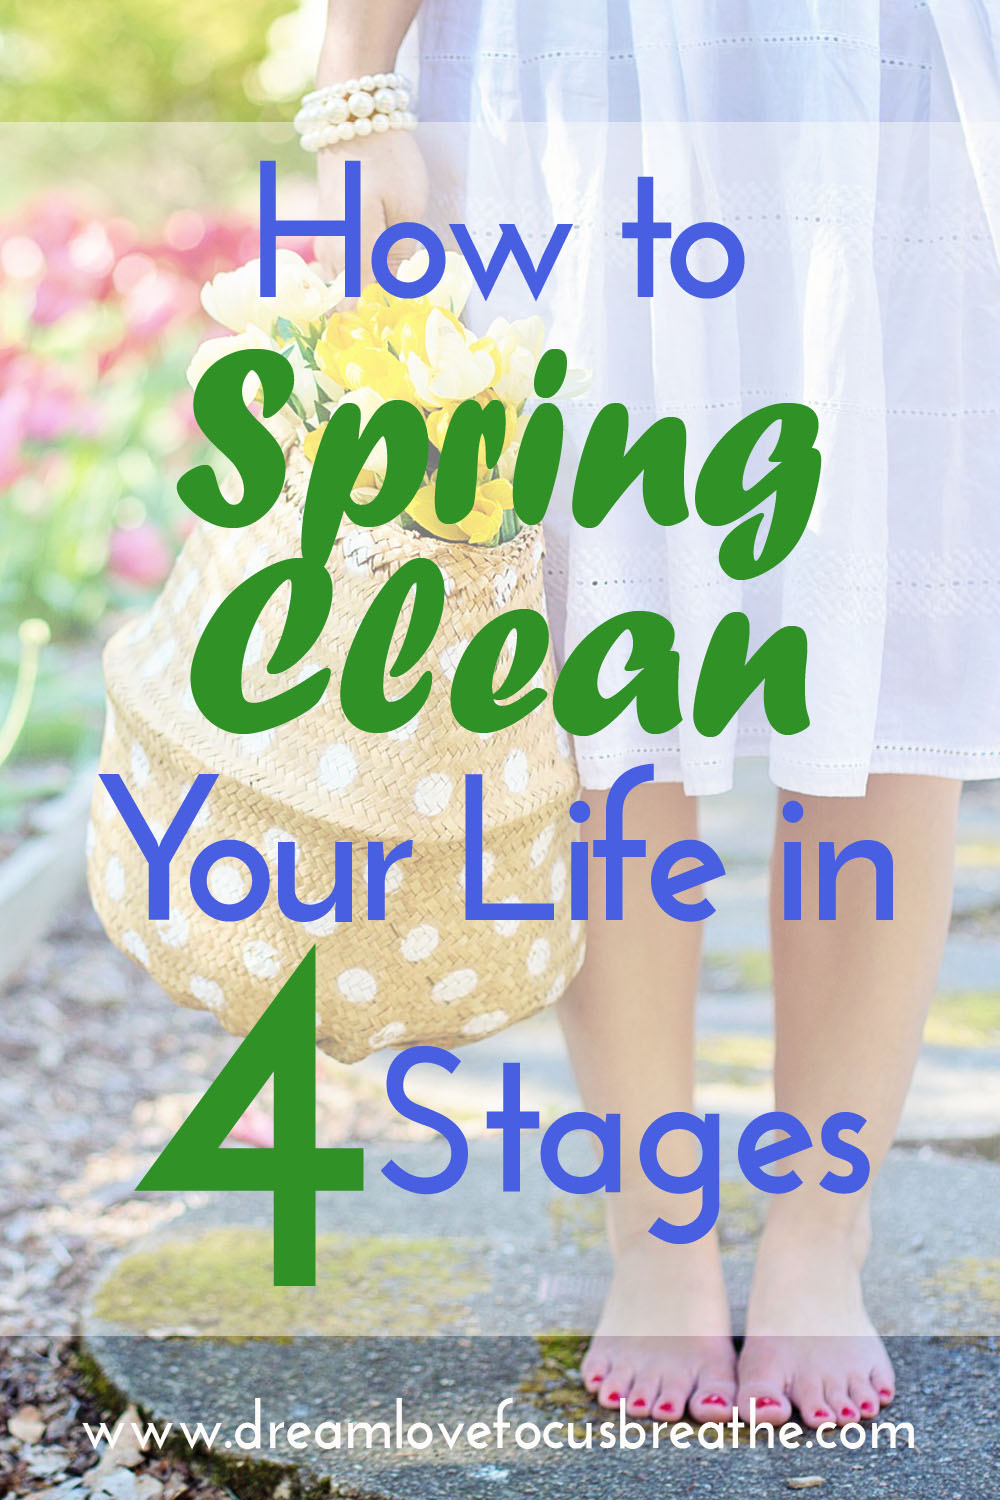 How to Spring Clean Your Life in 4 stages.jpg